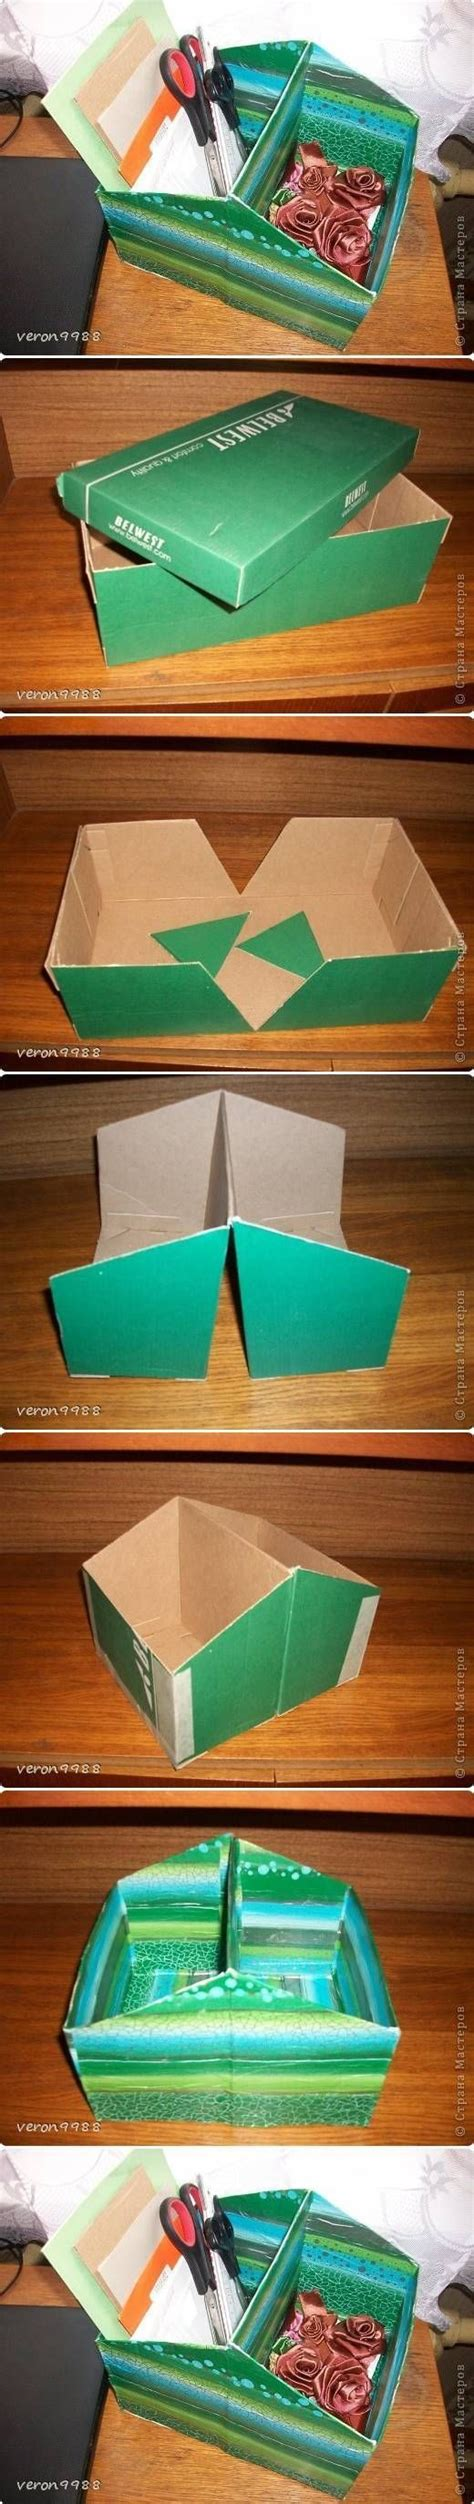 shoe box diy projects diy shoe box organizer pictures photos and images for